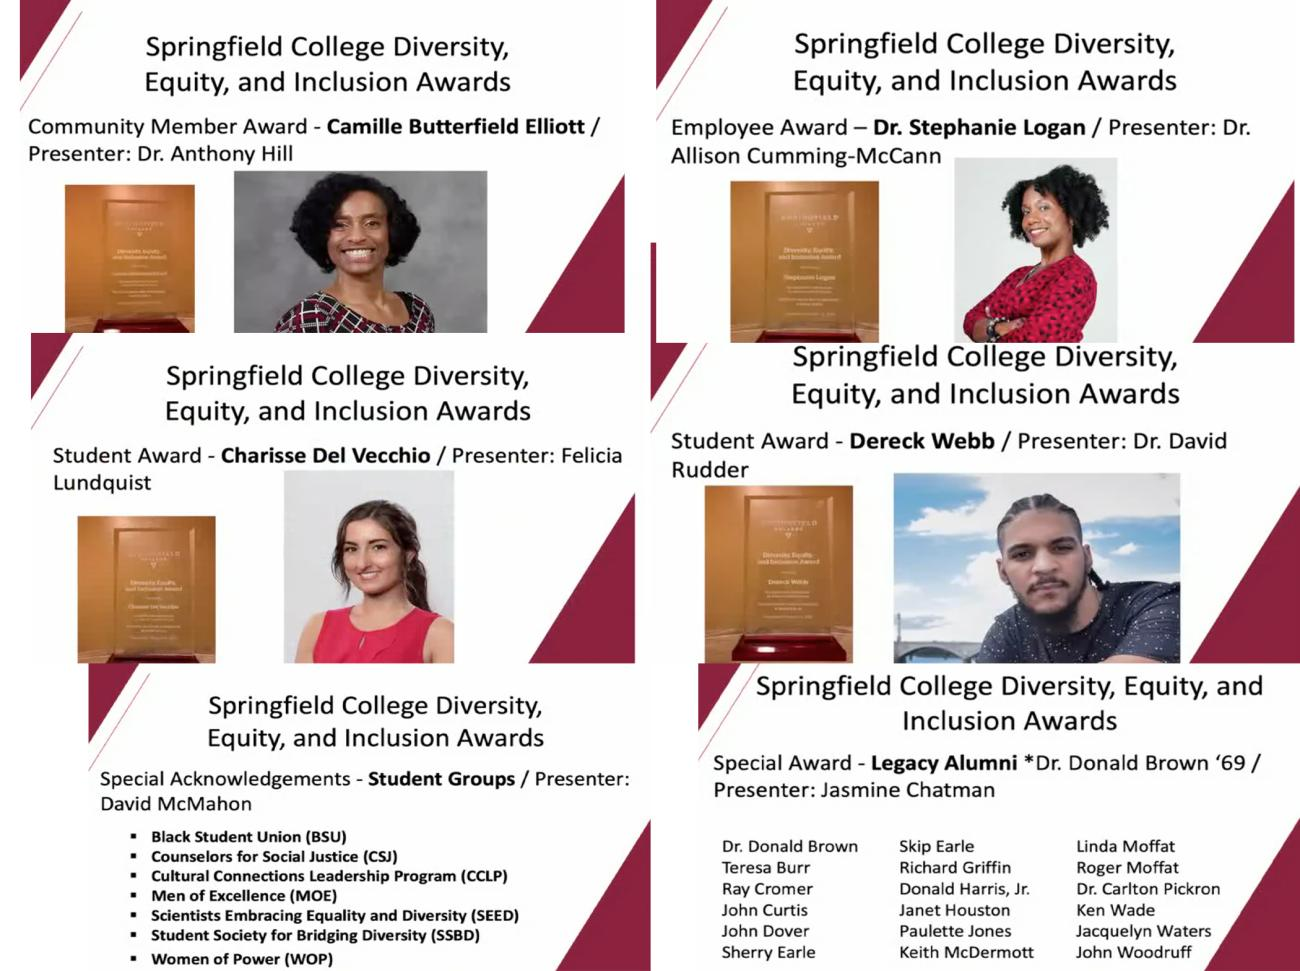 As part of the Springfield College eighth annual Martin Luther King Jr. Lecture, the third annual Springfield College Diversity, Equity, and Inclusion Awards were presented to members and student-groups within the Springfield College community, as well as the Springfield community. The awards recognize those who have made a significant contribution to diversity and inclusion on campus or in the Springfield community.